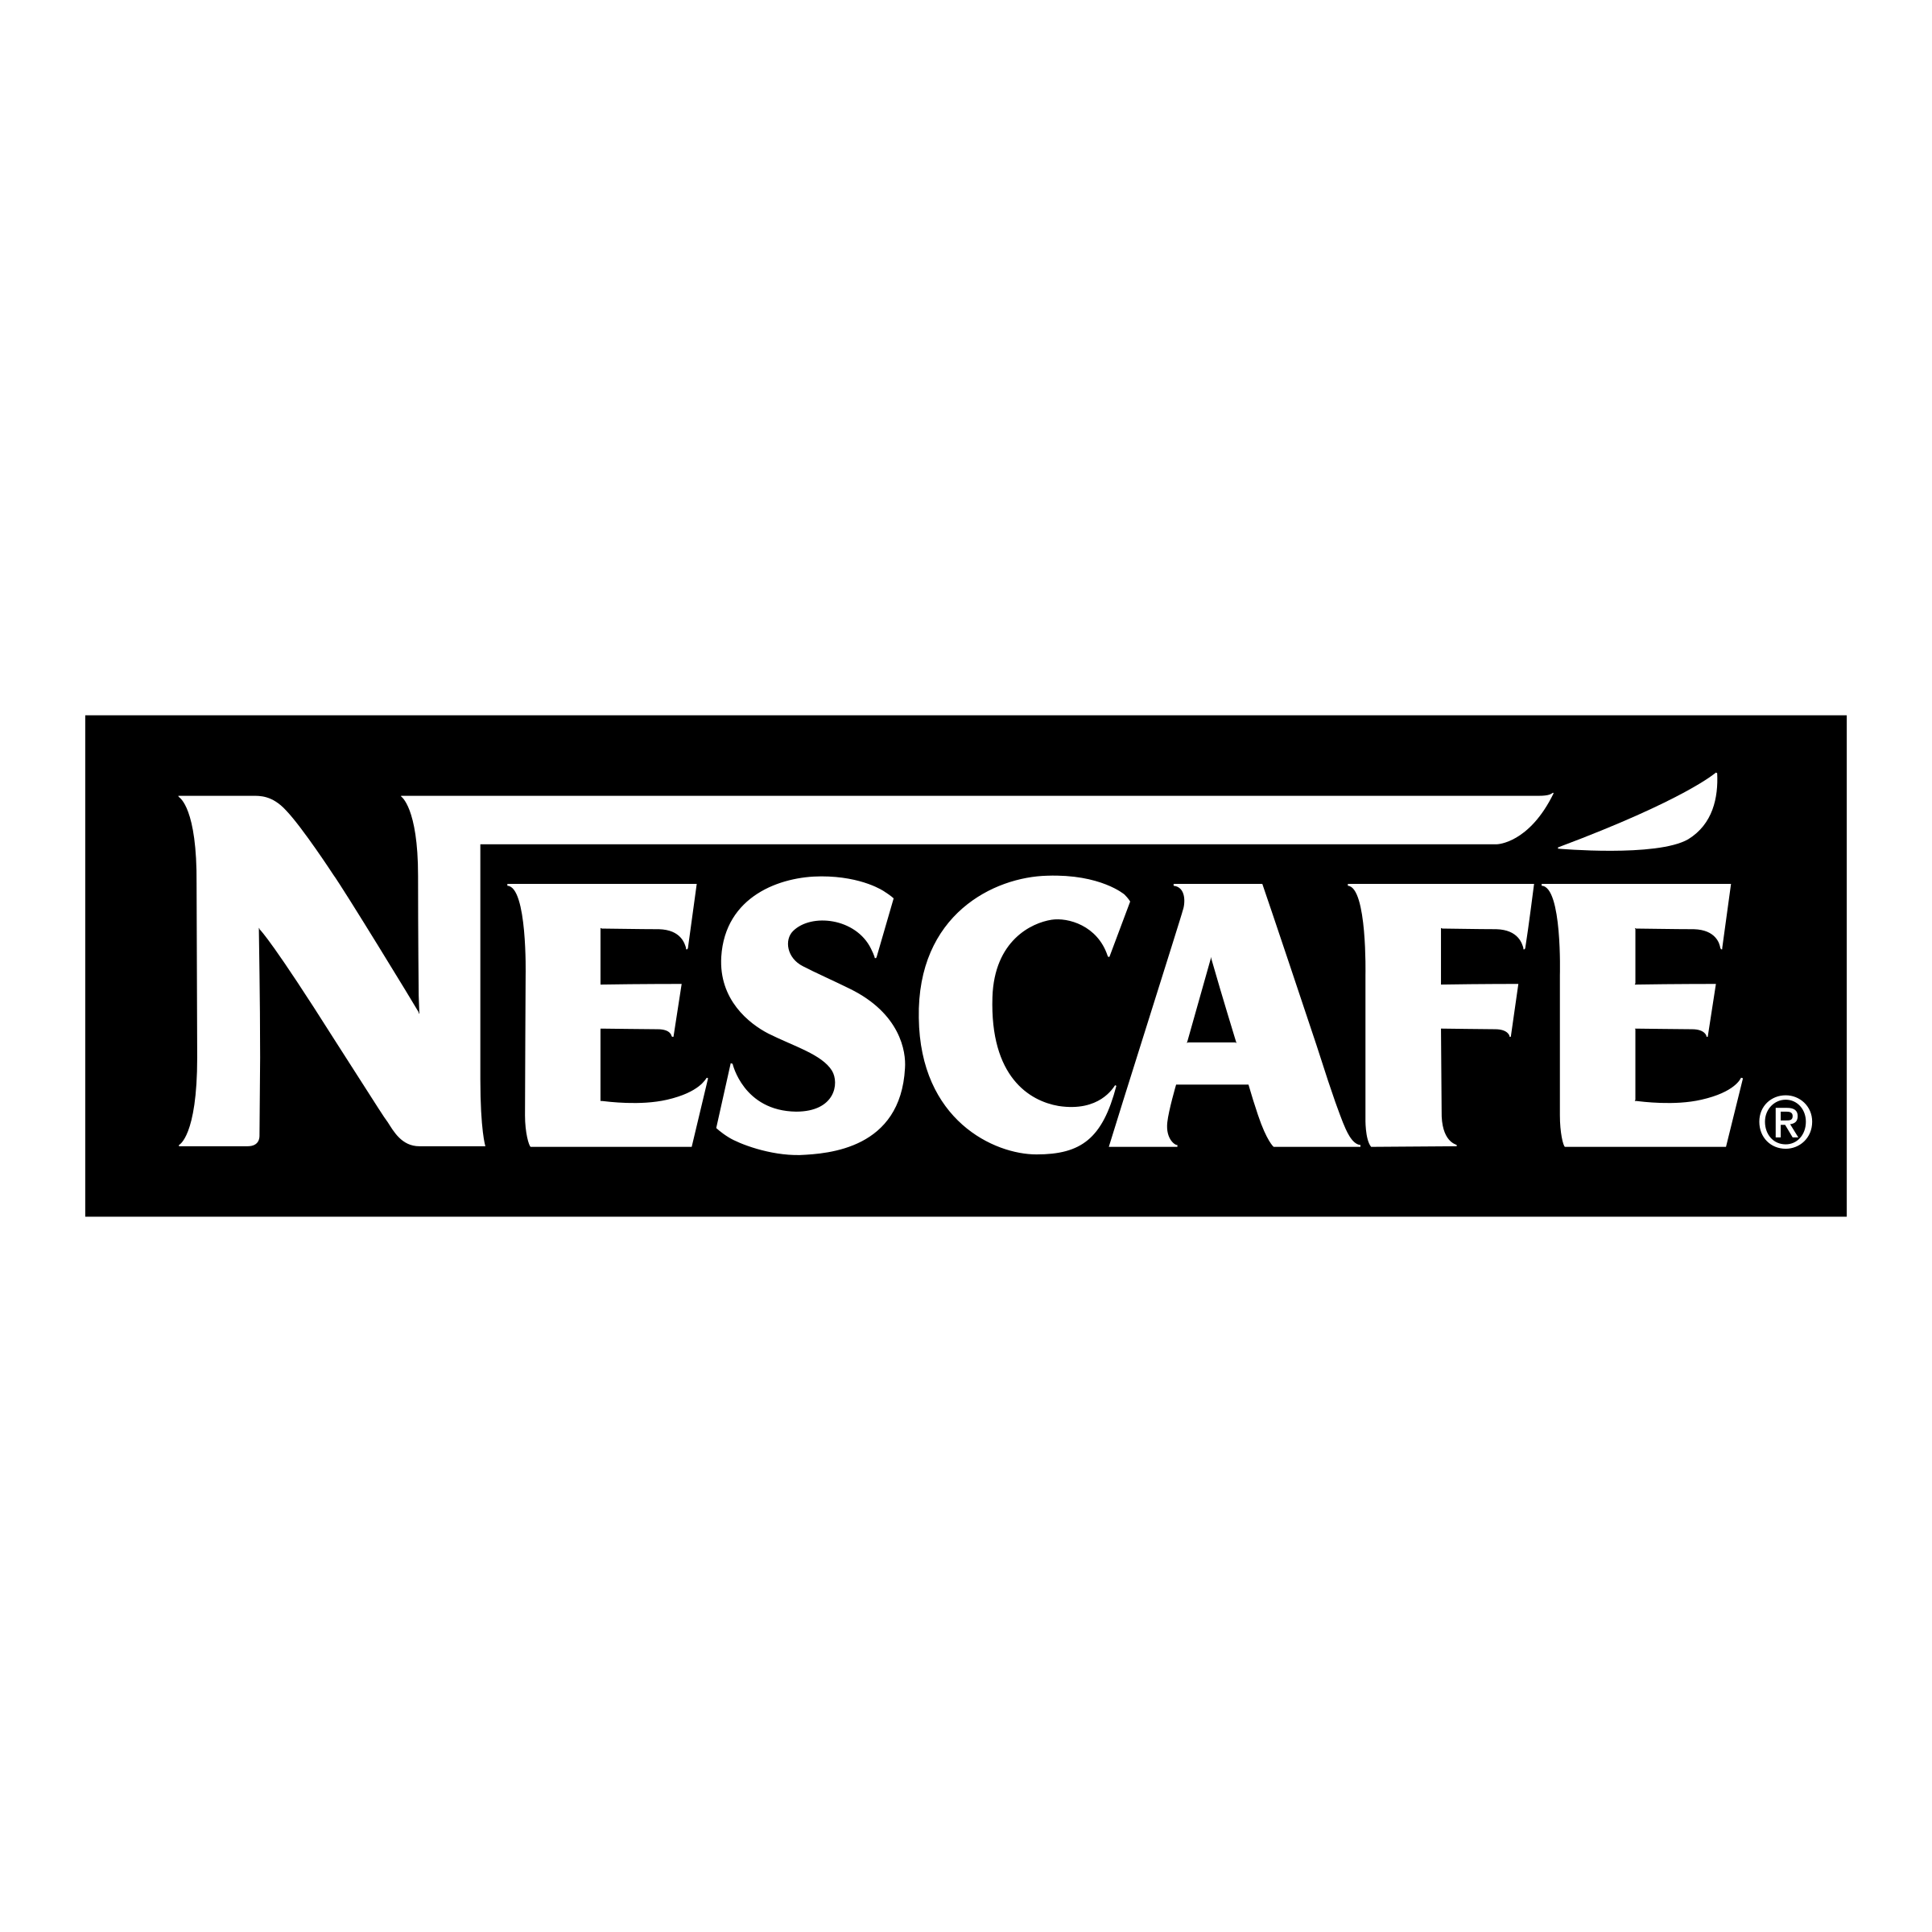 Nescafé Logo - Nescafé Logo PNG Transparent & SVG Vector - Freebie Supply